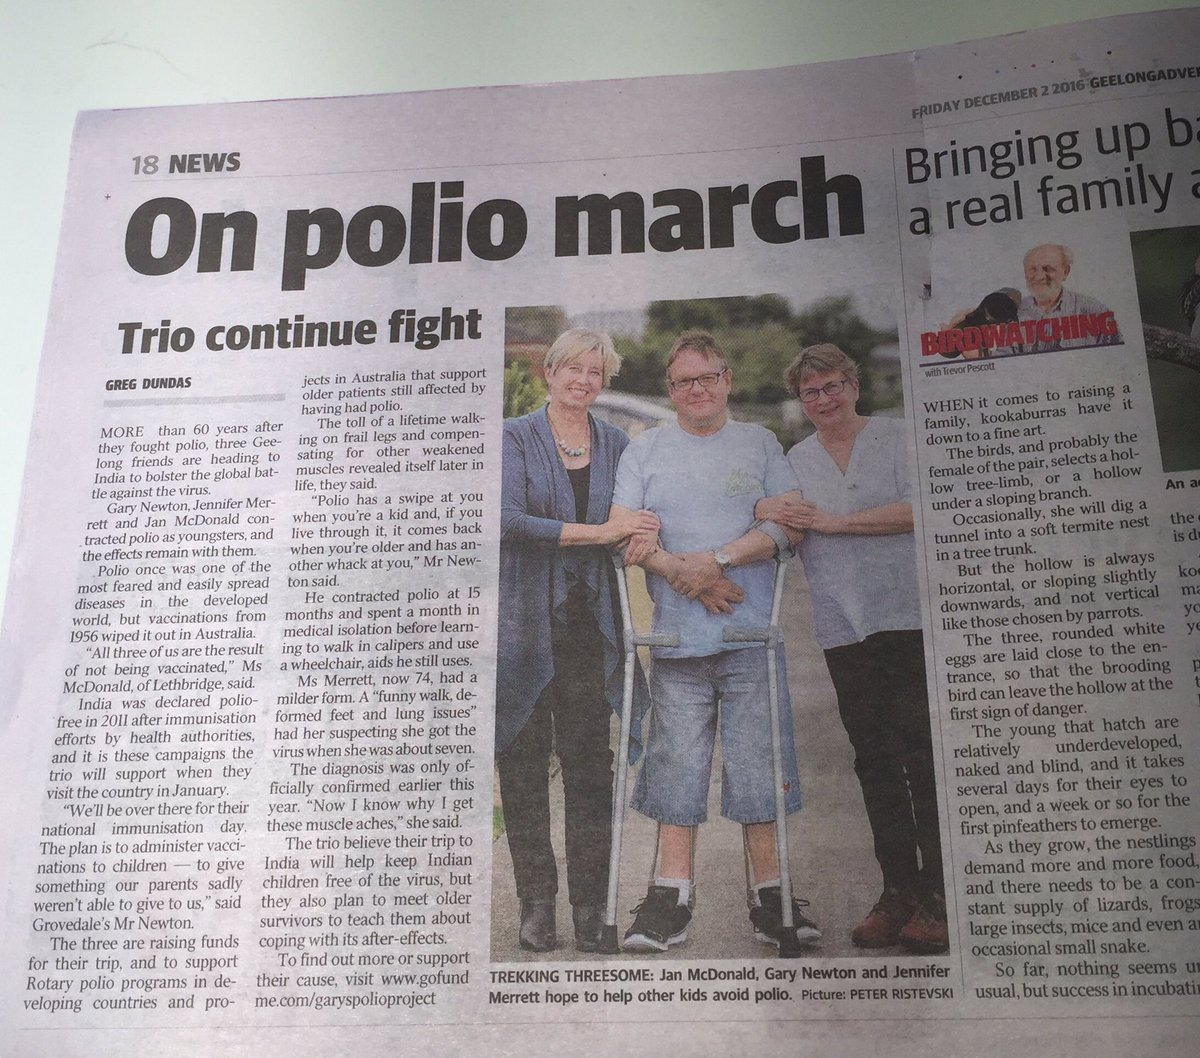 3 of our Geelong Polio Support Group are heading to India to help fight polio, support its survivors & honour our parents Here's their story